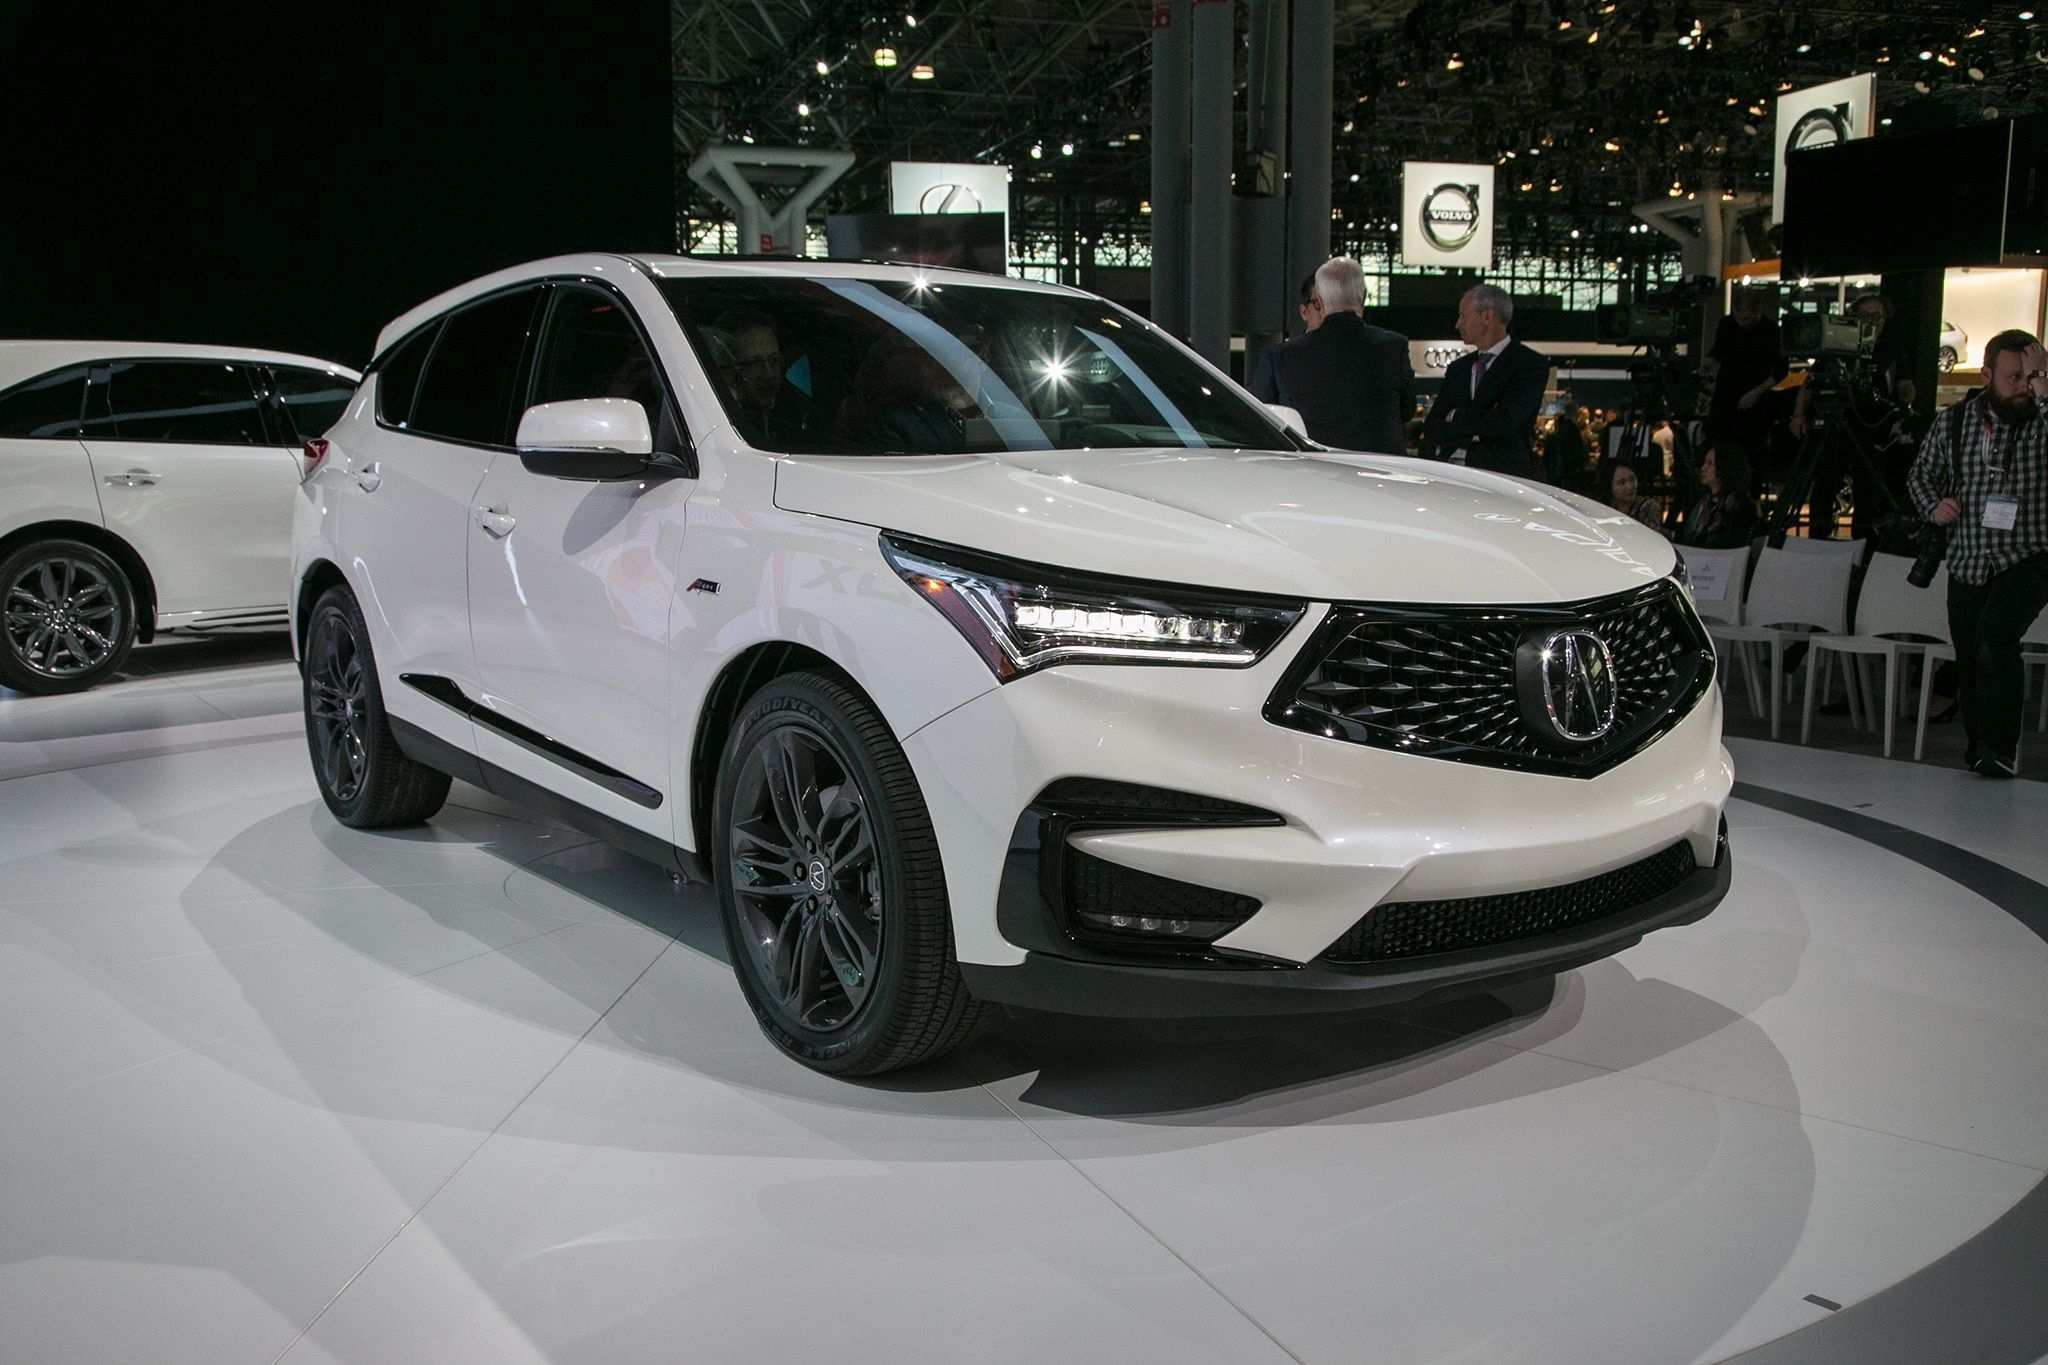 14 Concept of The Acura Zdx 2019 Price First Drive Specs and Review for The Acura Zdx 2019 Price First Drive